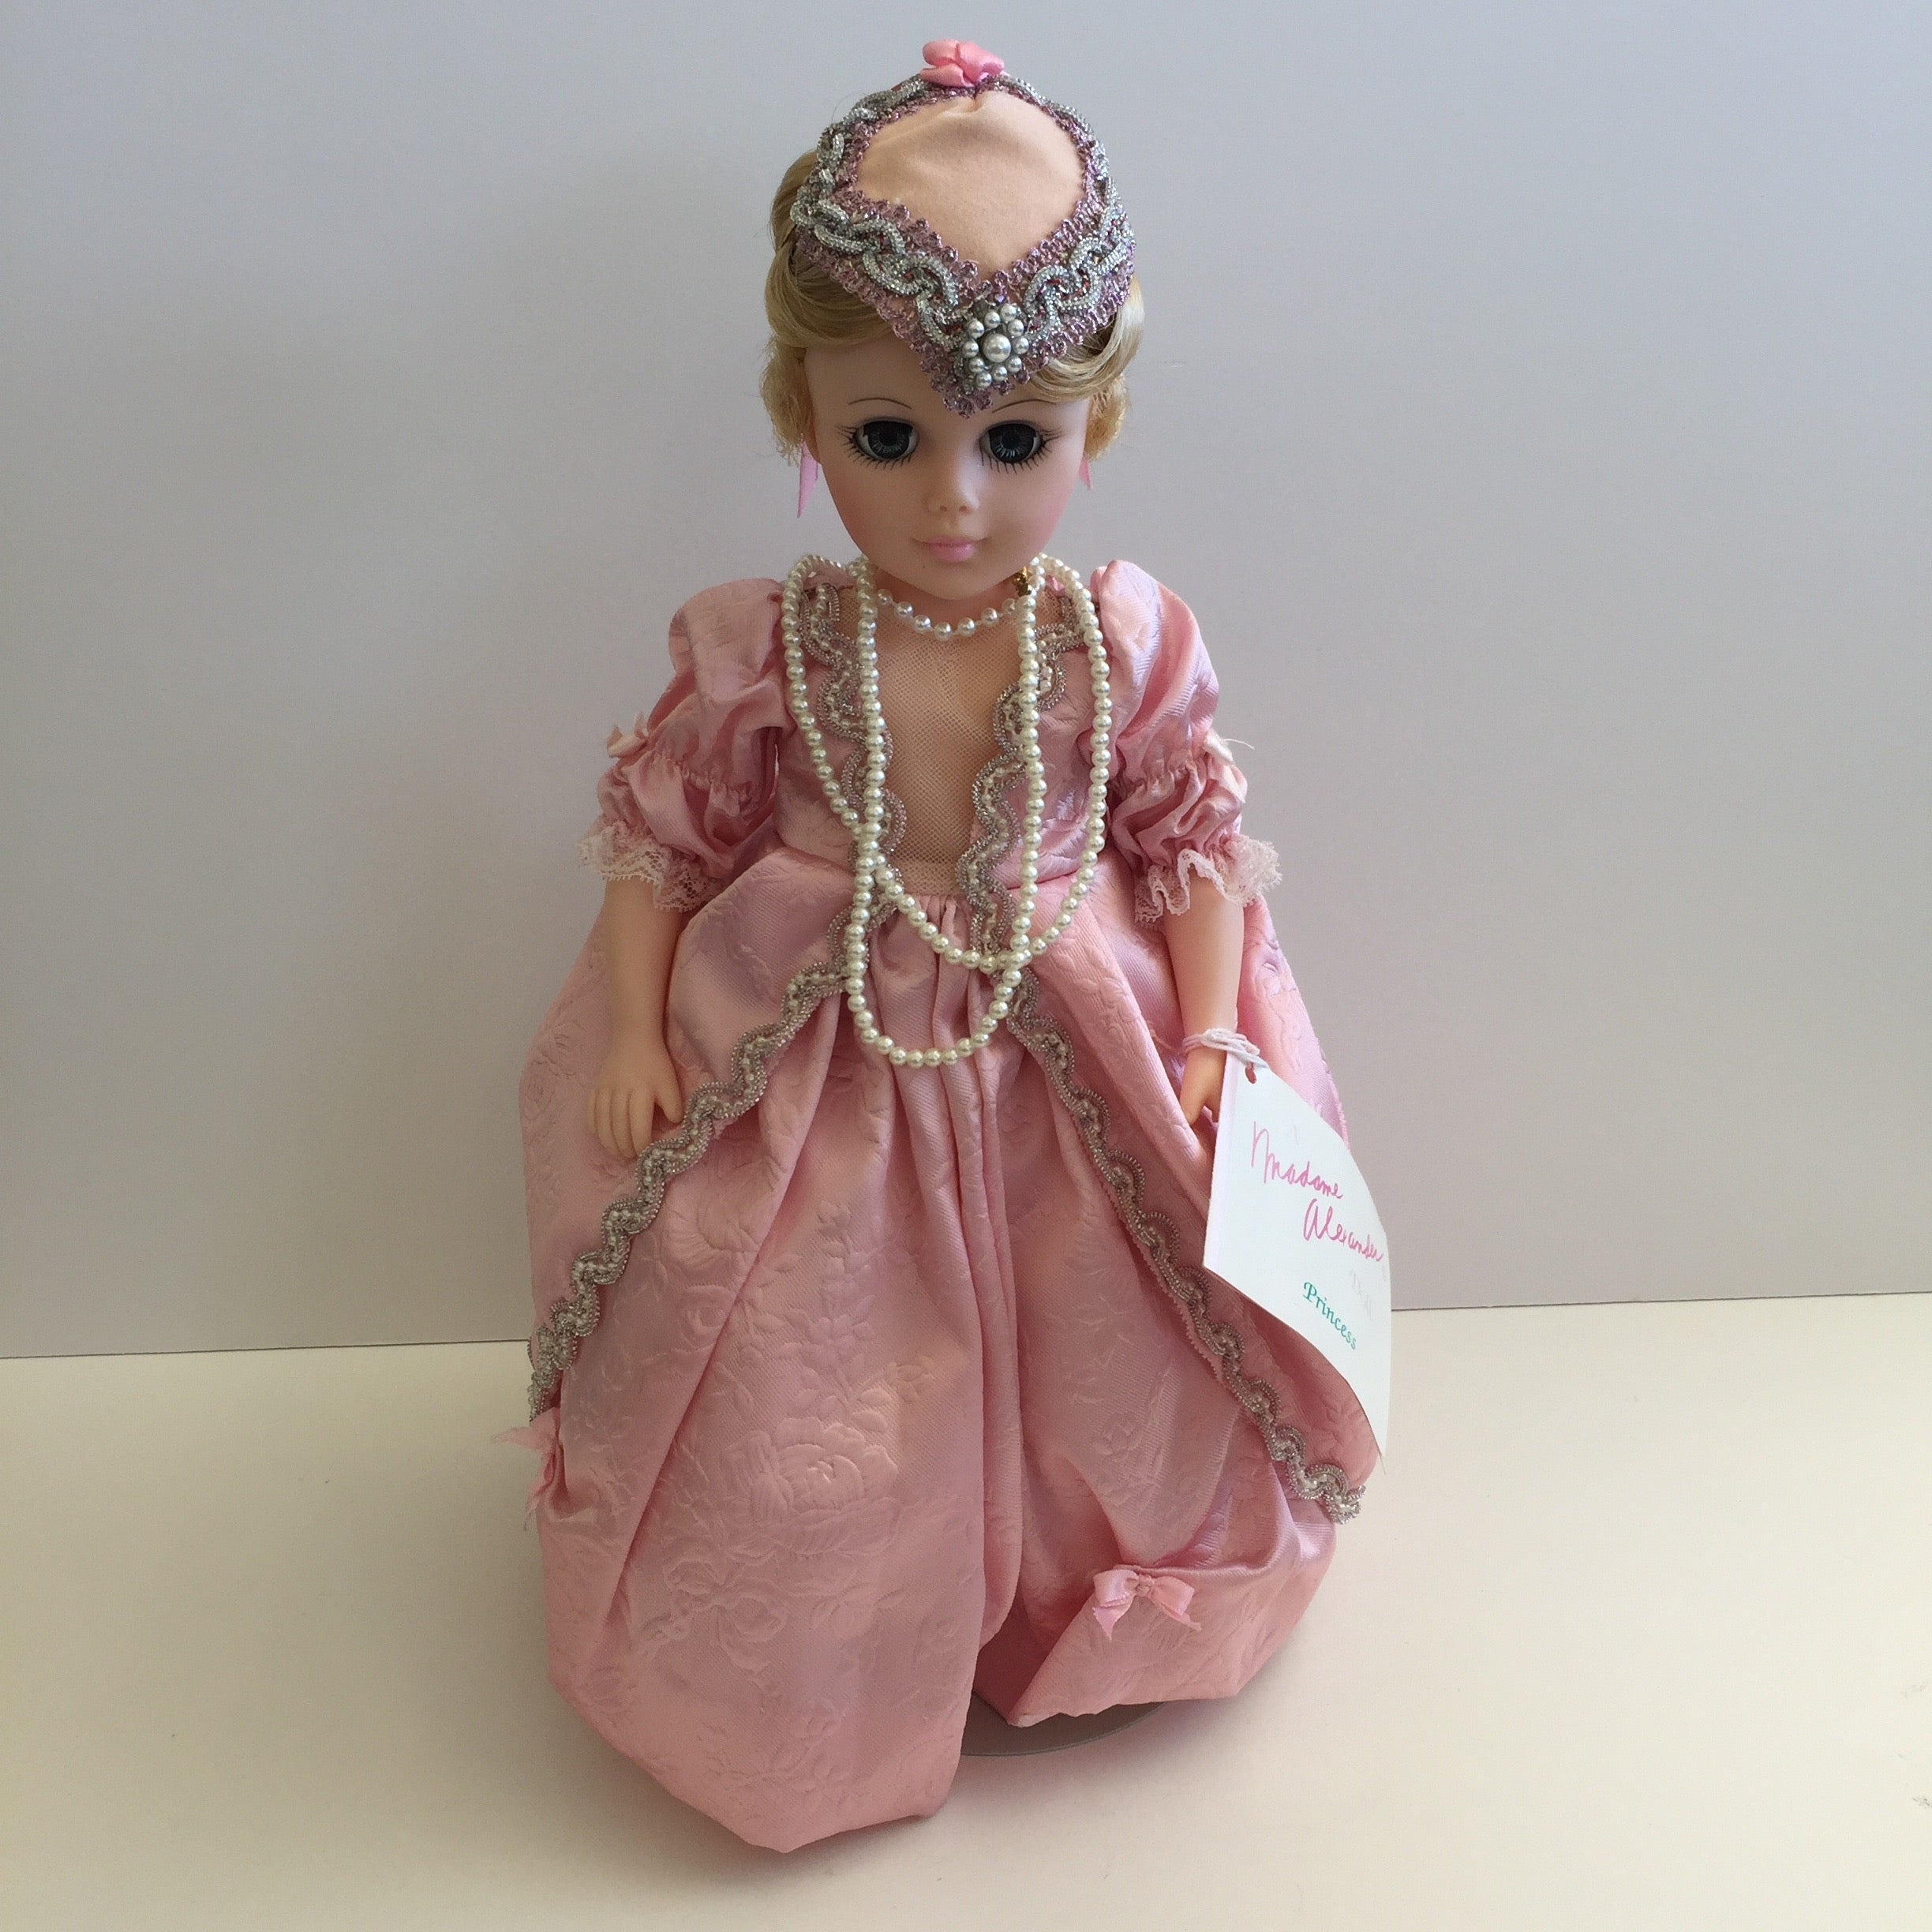 Mint in box 1990 Madame Alexander PRINCESS Collectible Doll